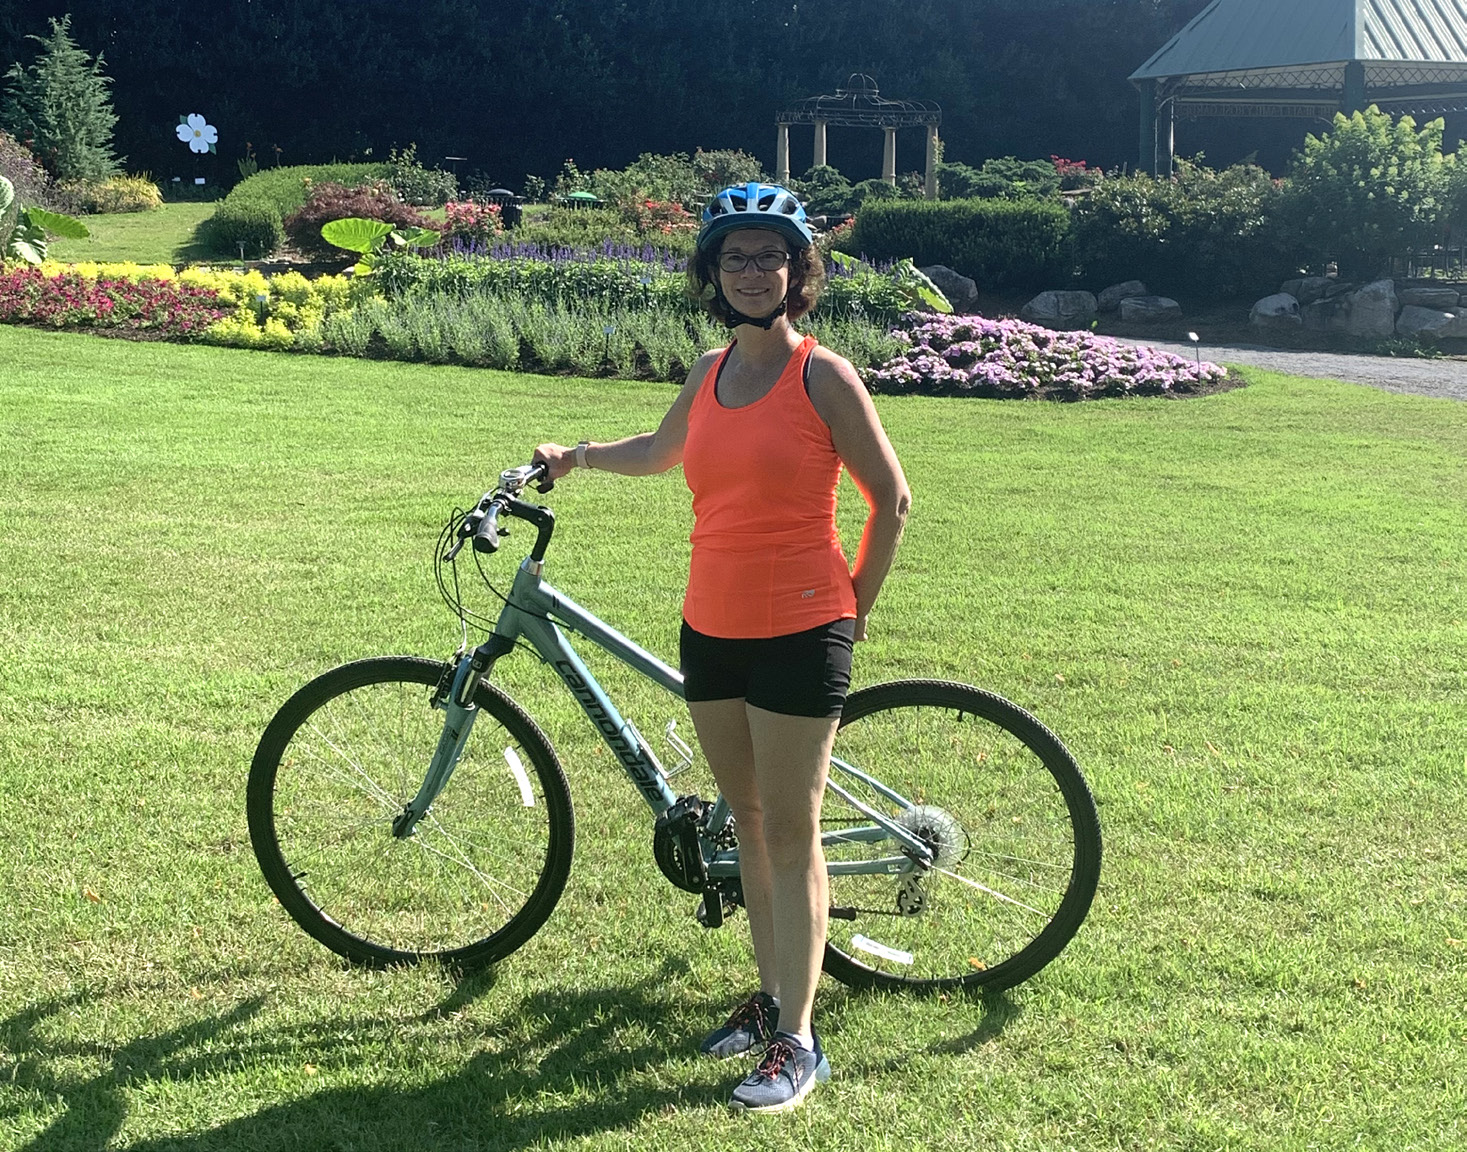 Julia Wood pictured with bike